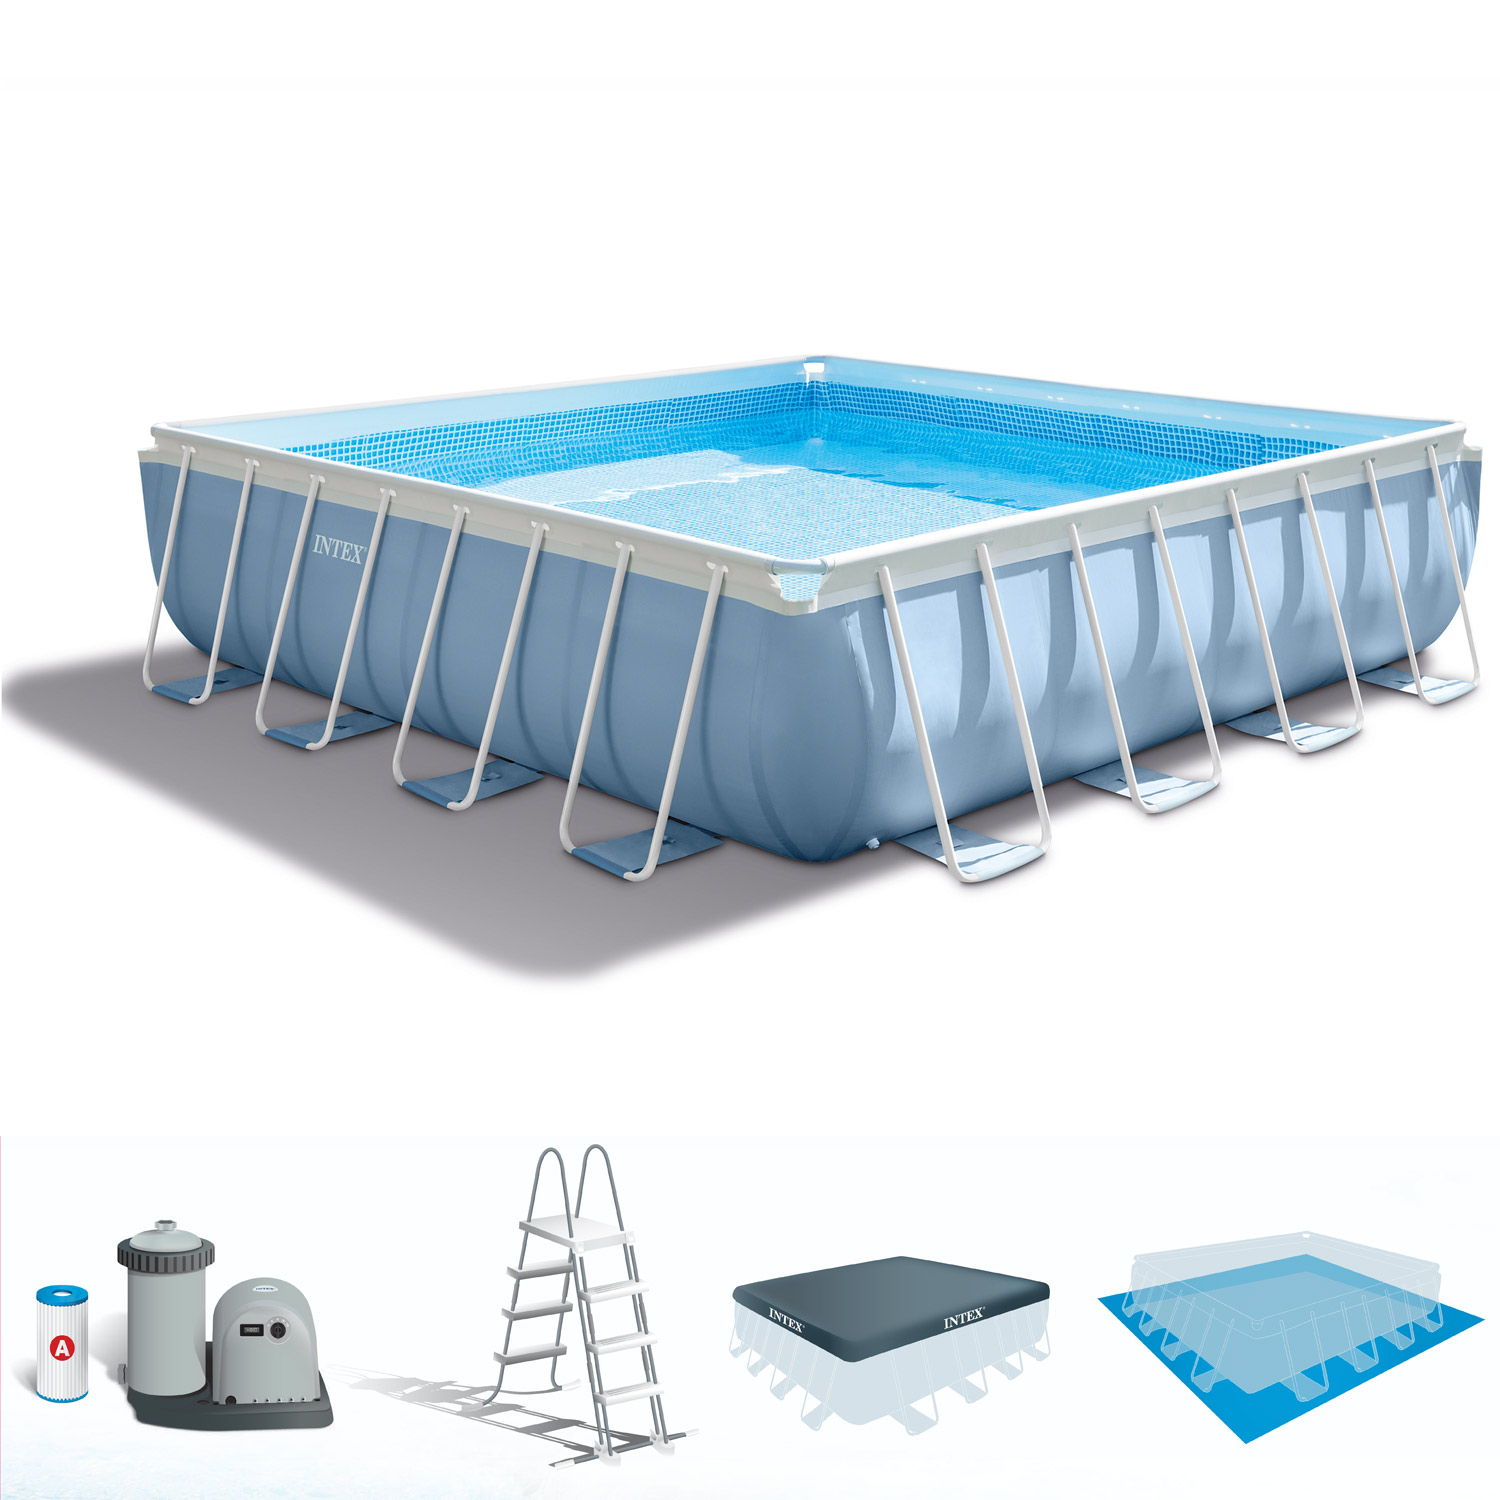 Intex swimming pool frame prism 300x175x80 cm mit pumpe leiter - Intex prism frame ...